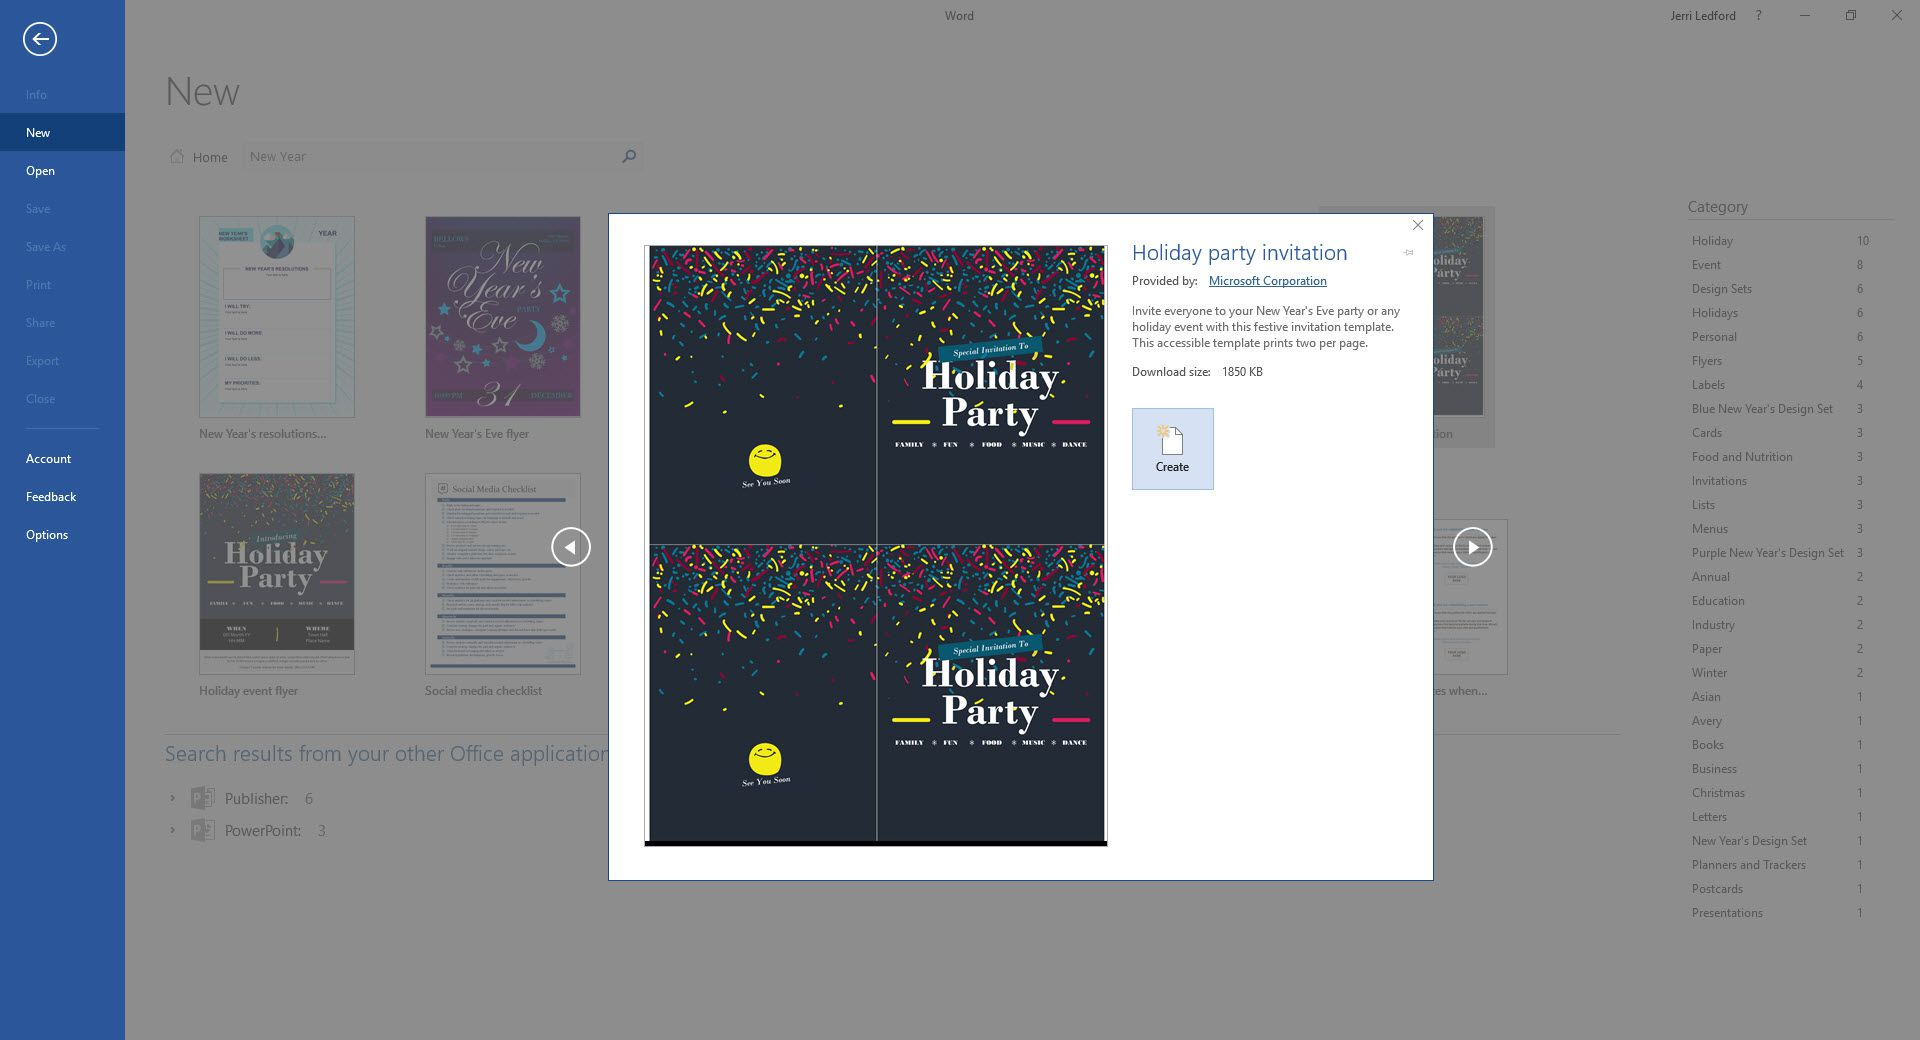 A screenshot of the Microsoft Word New Year's Eve Holiday Party Invitation template.